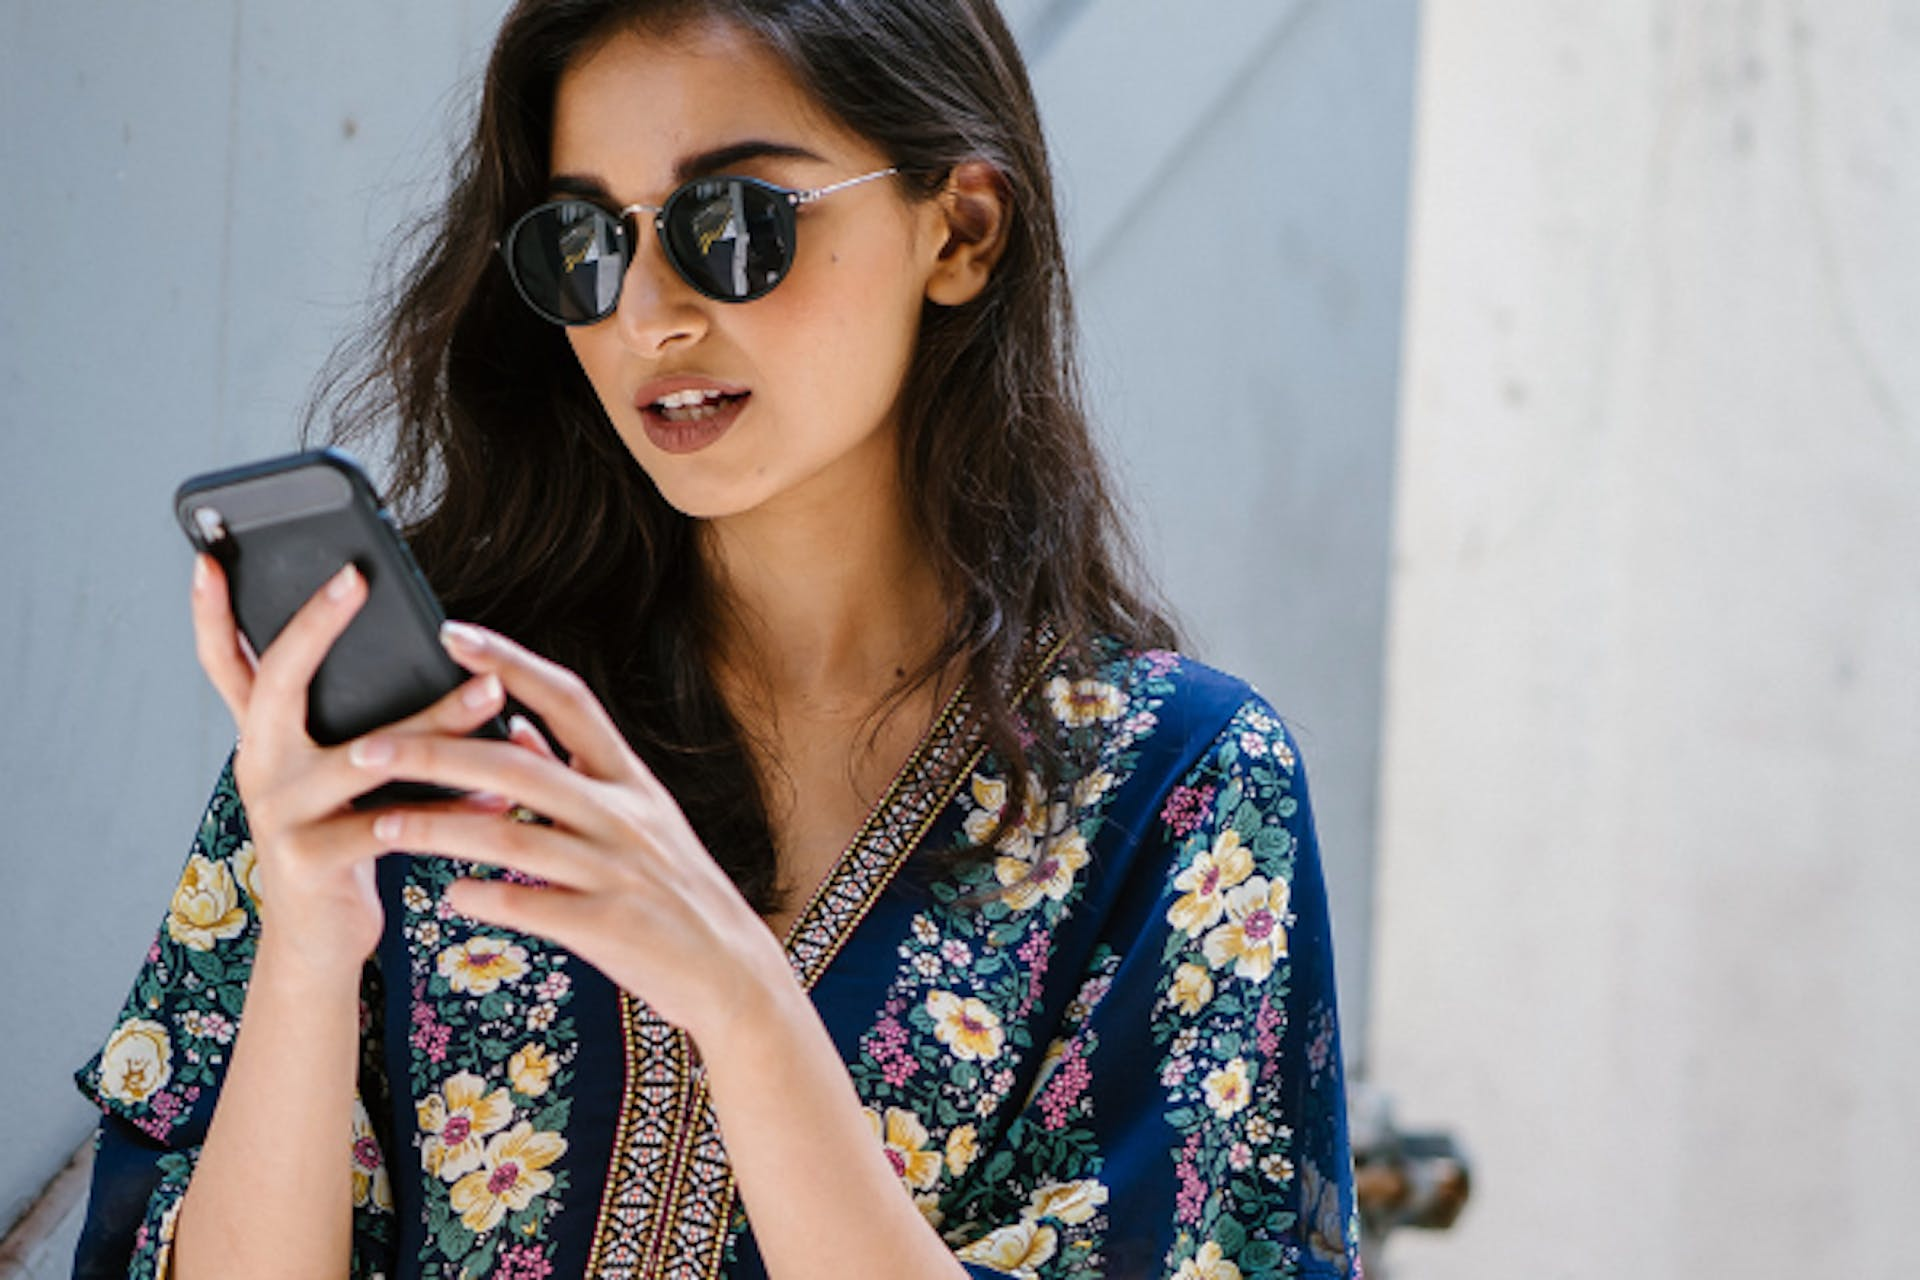 A woman in a colourful floral jacket playing on her phone.